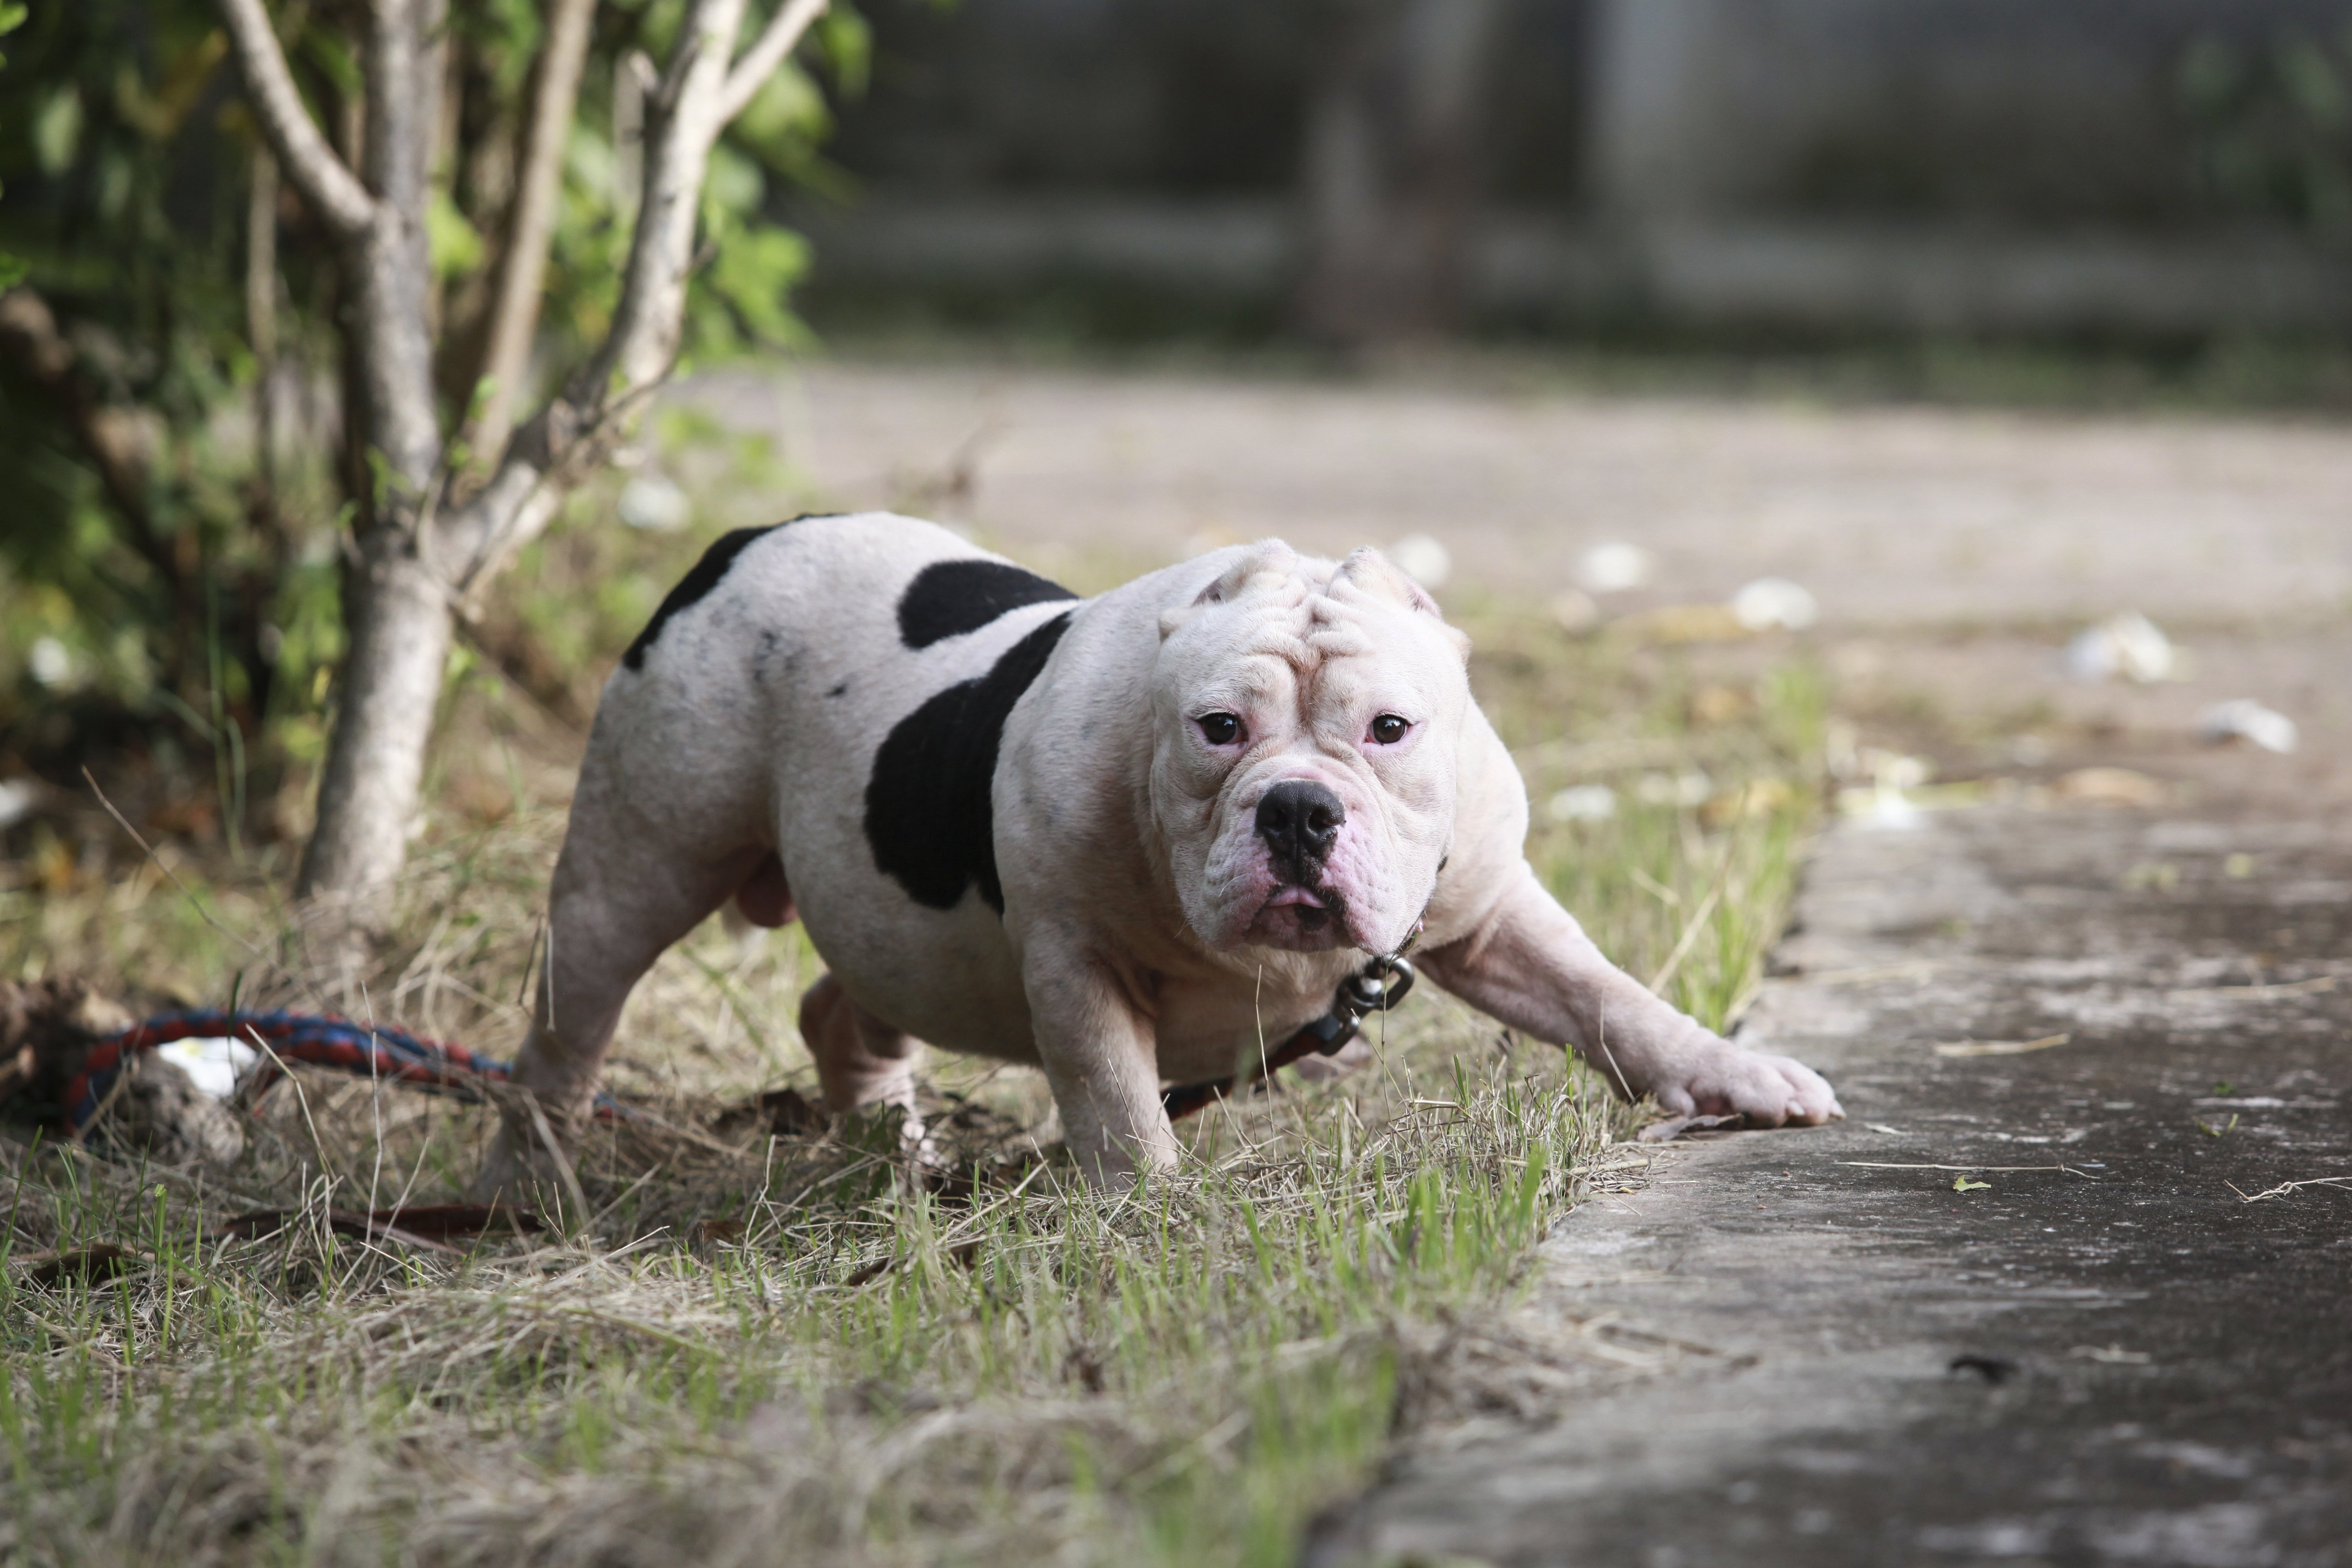 A pit bull braces itself for an attack   Photo: Shutterstock/Tungtron